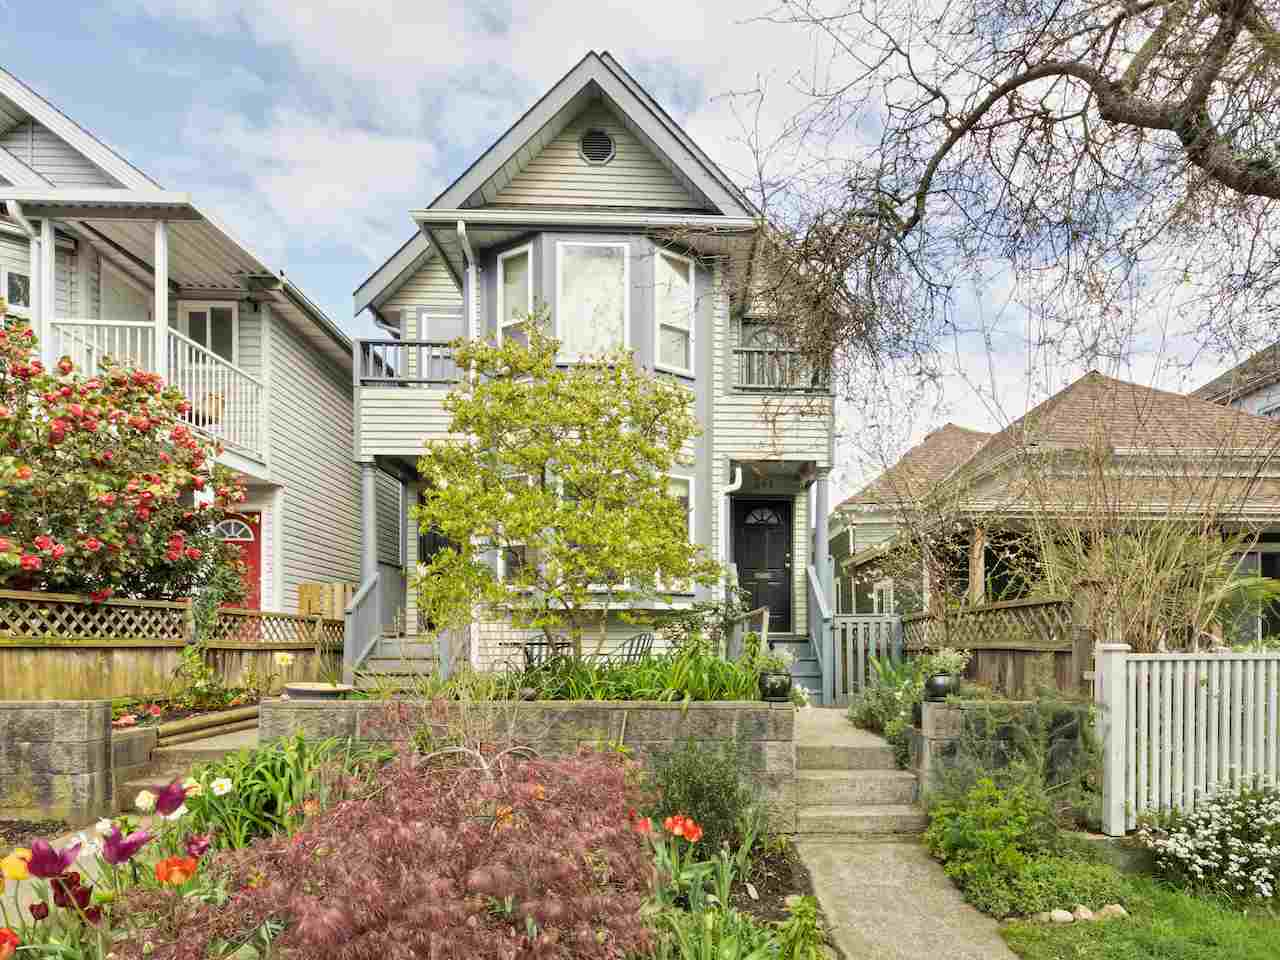 Main Photo: 643 E PENDER Street in Vancouver: Mount Pleasant VE House 1/2 Duplex for sale (Vancouver East)  : MLS® # R2055698